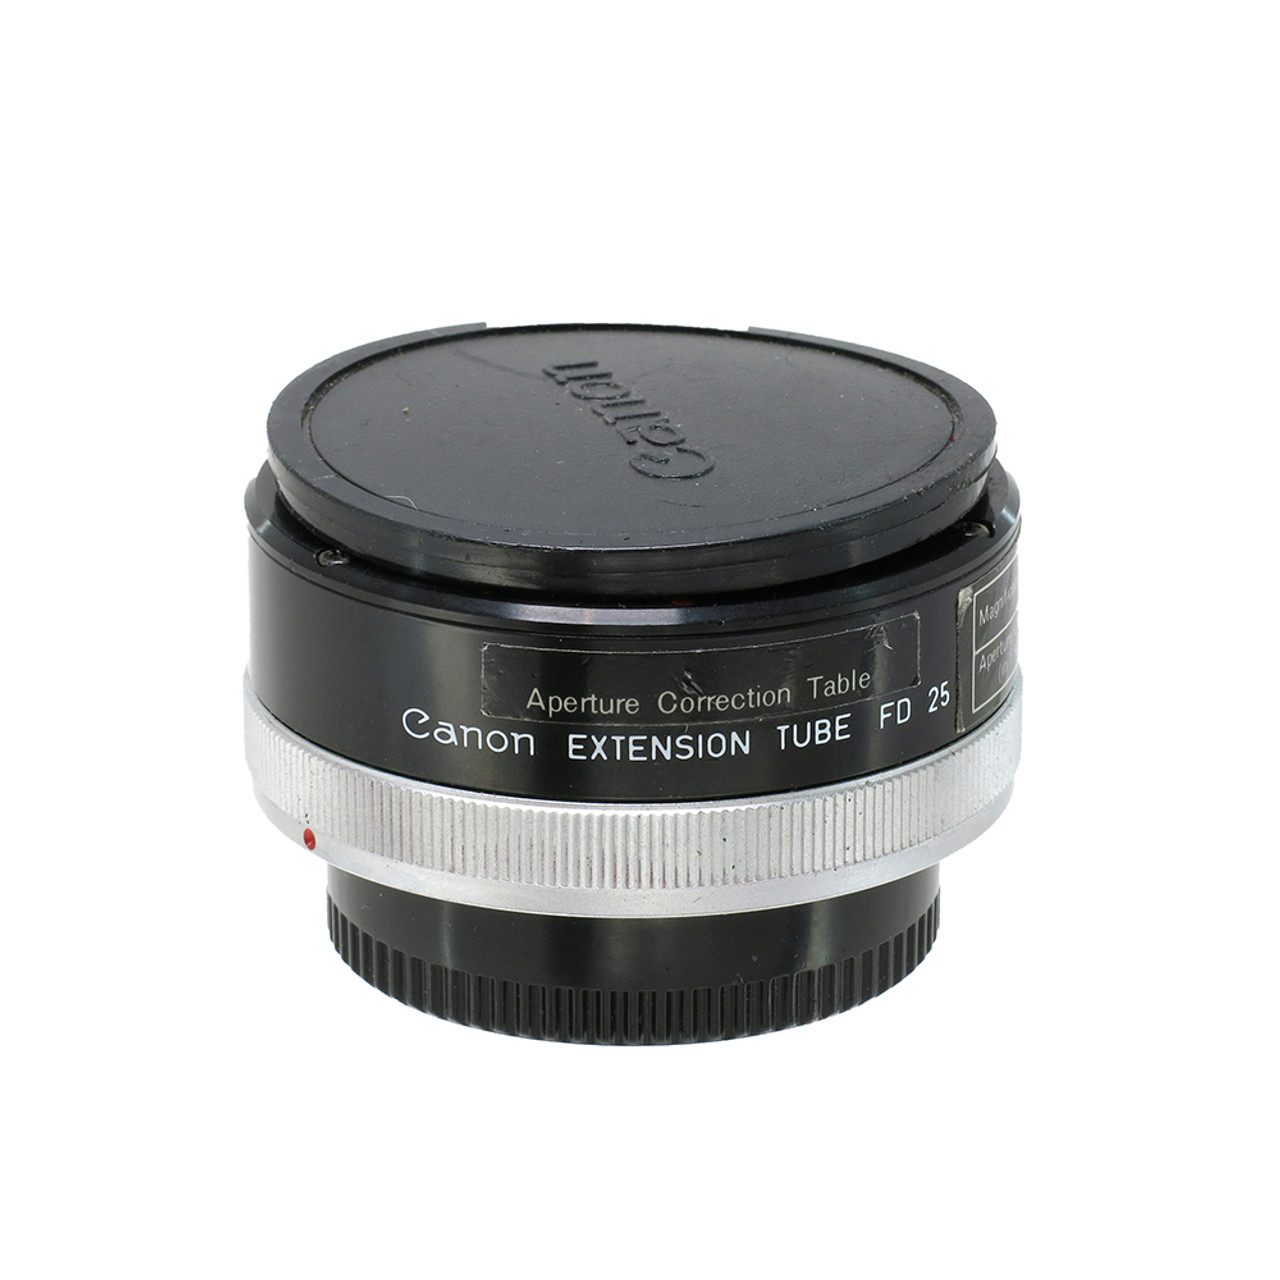 USED CANON FD25 EXTENSION TUBE